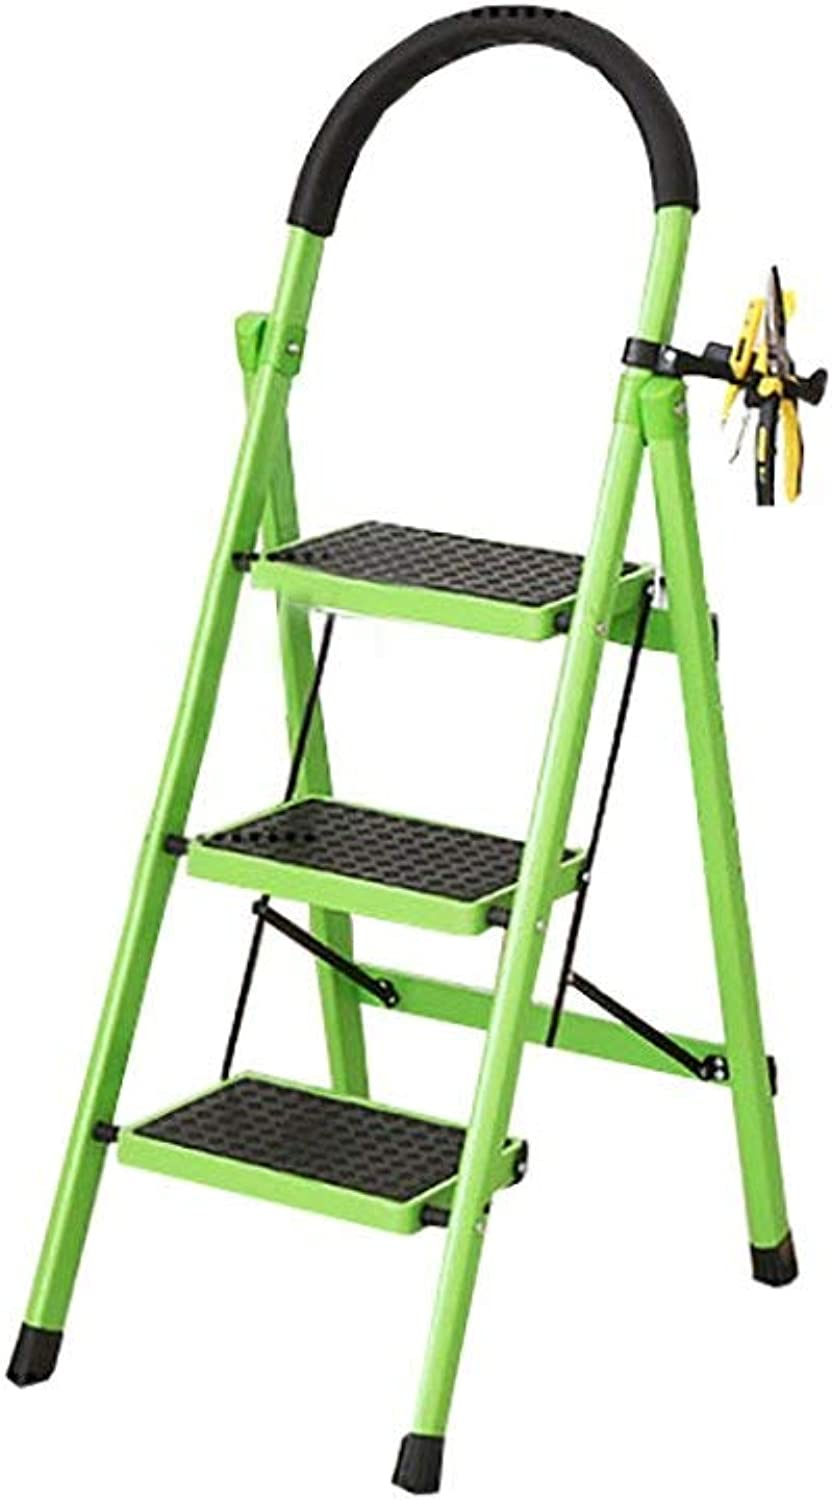 XITER 3 5 Tier Stairs Stool Metal Folding Ladder Stool Indoor Non-Slip Tread High Ladder Multi-Functional Safety Stepladder Stool (color   Green, Size   3 Tier)